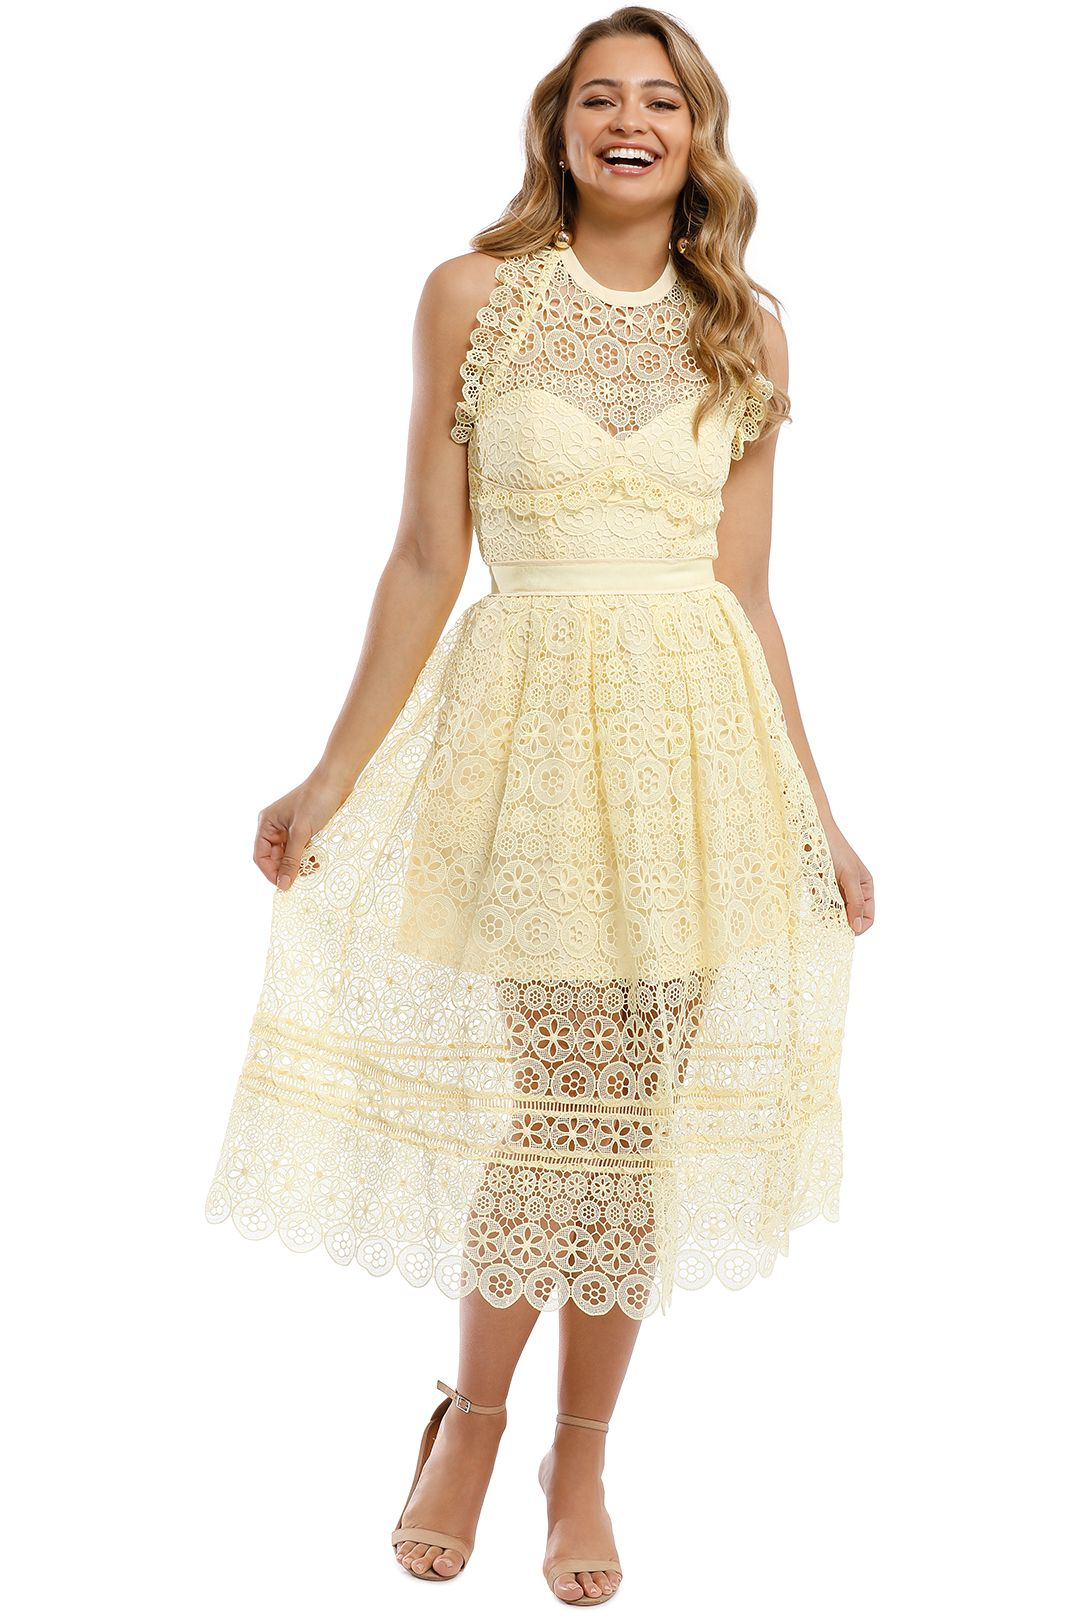 Self Portrait - Yellow Circle Floral Lace MIdi Dress - Yellow - Front